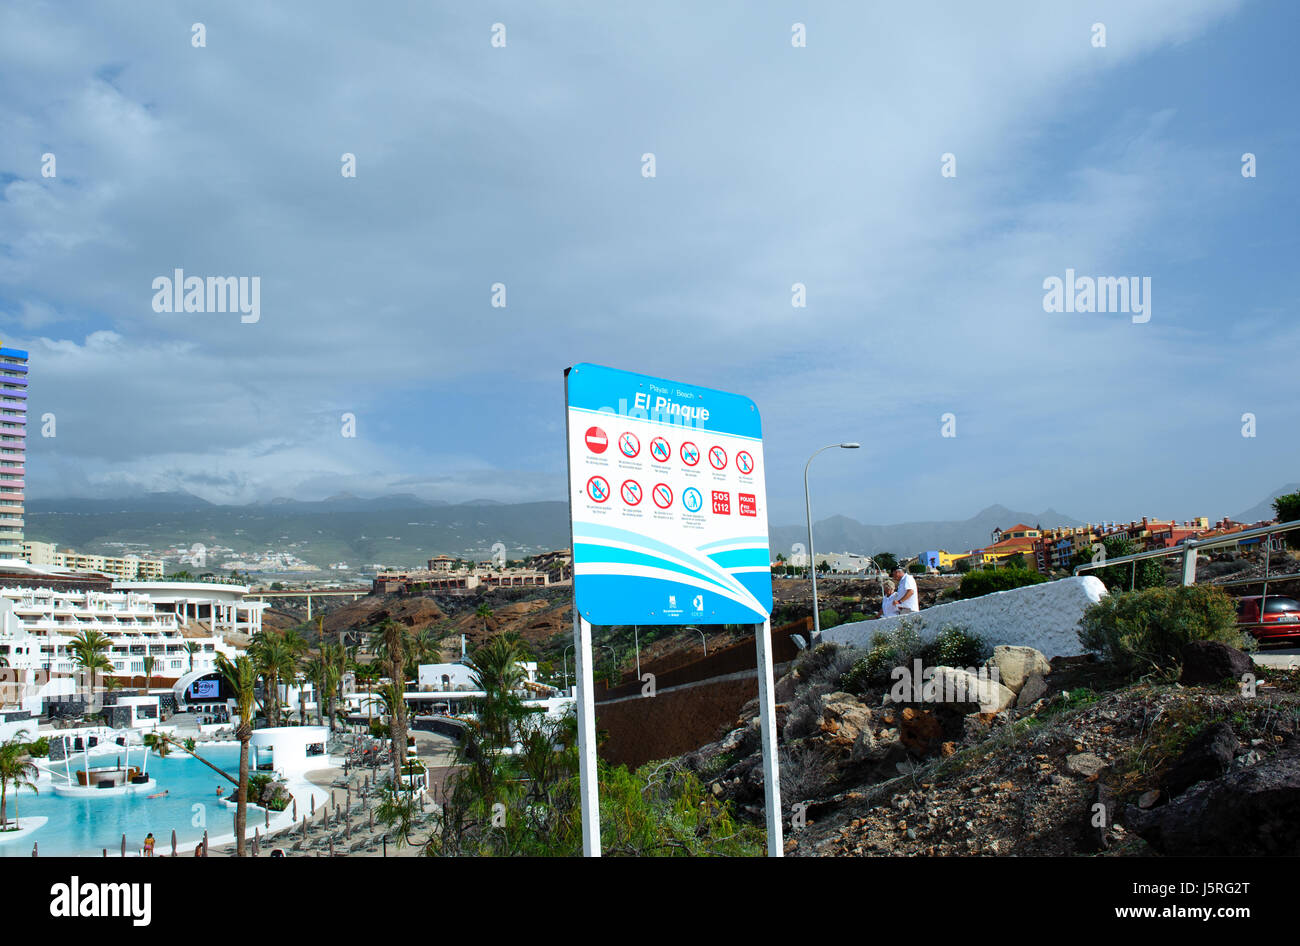 Playa El Pinque Tenerife -25 December, 2016. Signboard Playa El Pinque small public beach in  Tenerife, Canaries - Stock Image